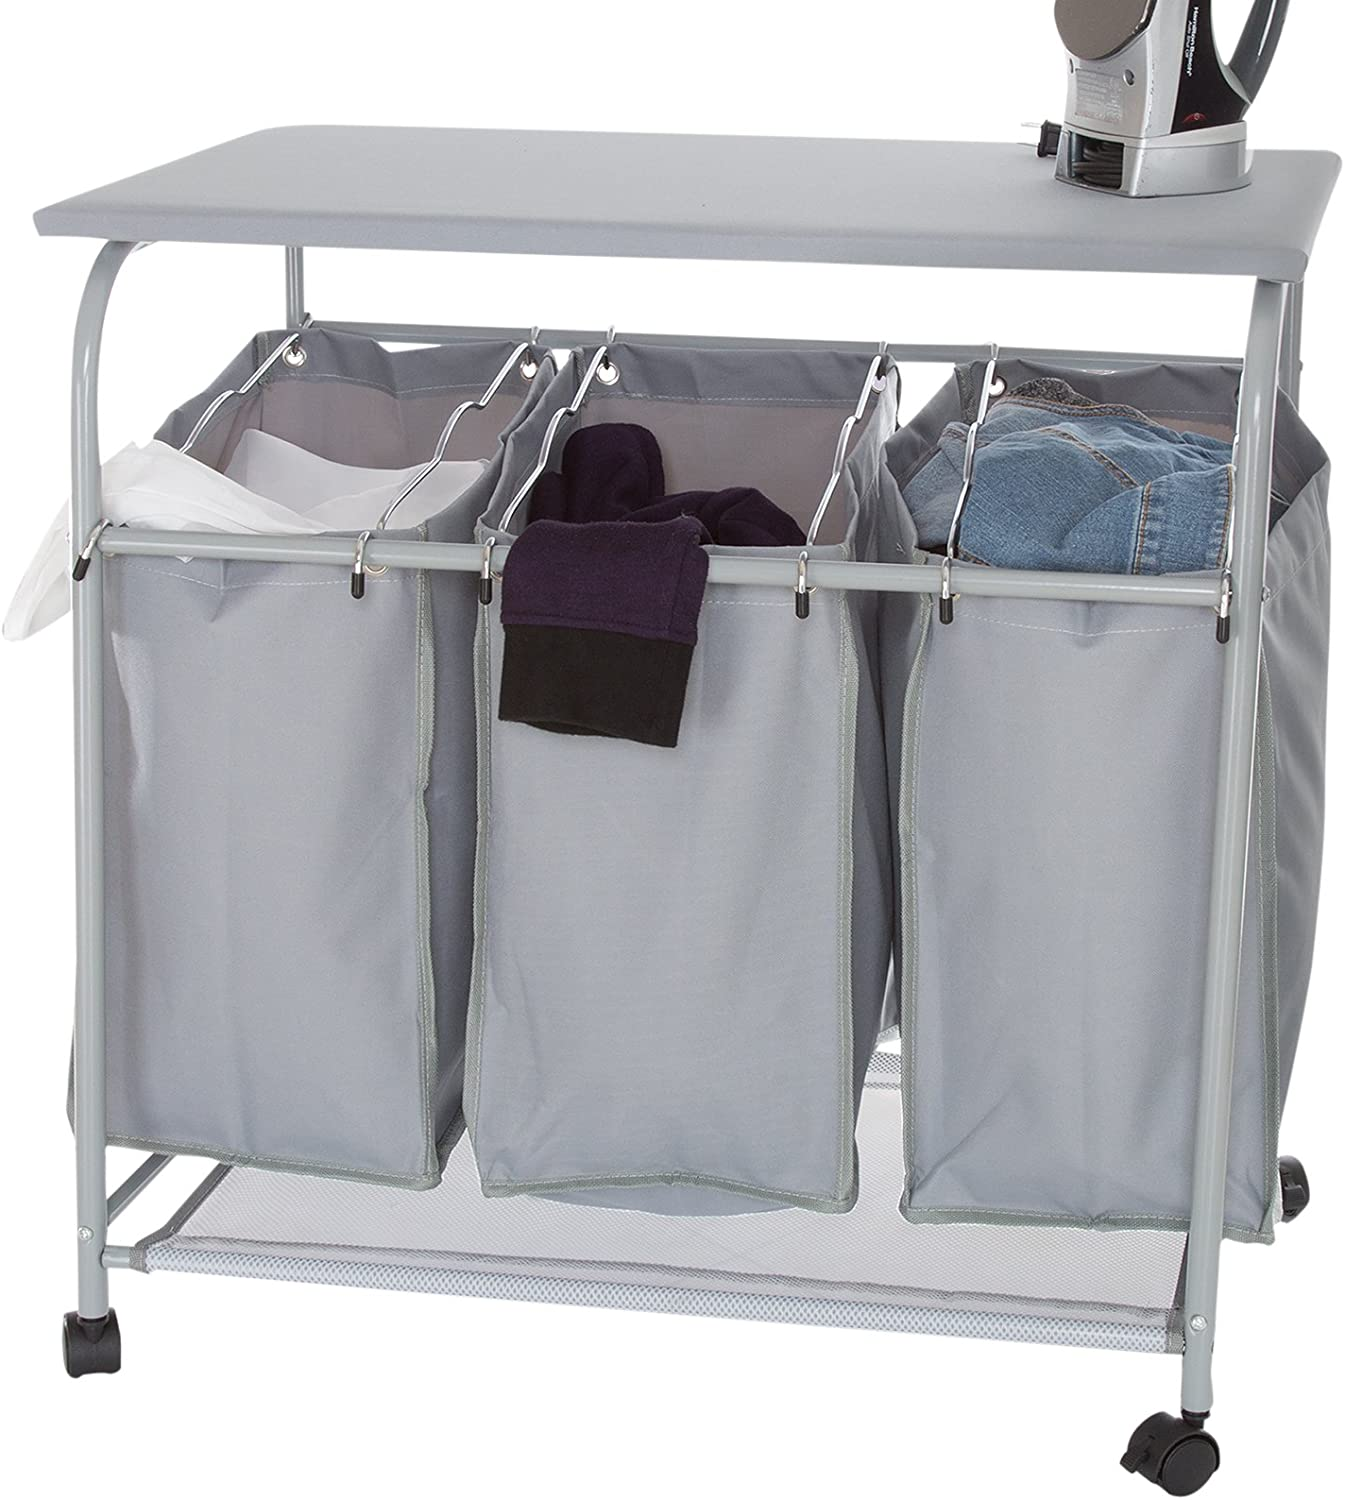 Lavish Home Rolling 3 Bin Laundry Sorter and Ironing Station-Gray